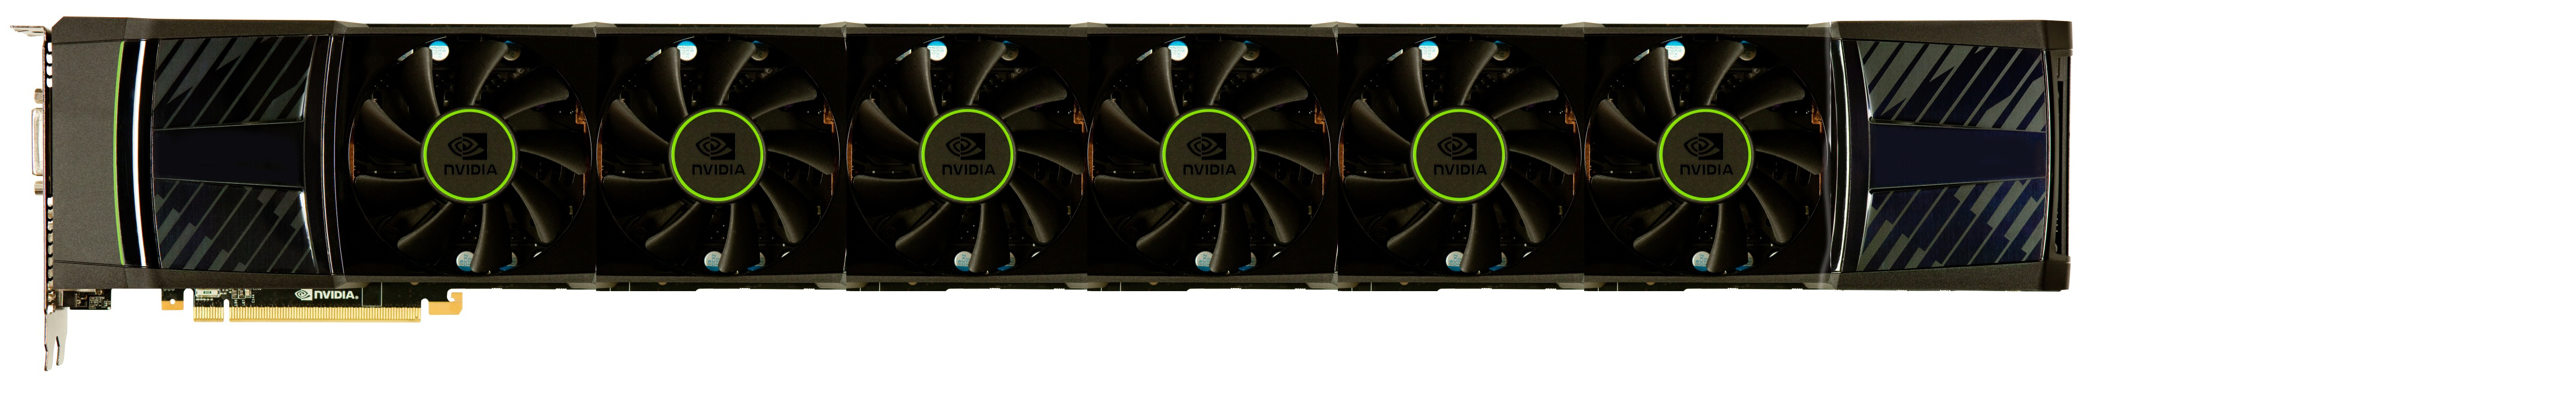 nvidia-gefroce-gtx-590-video-card.jpg